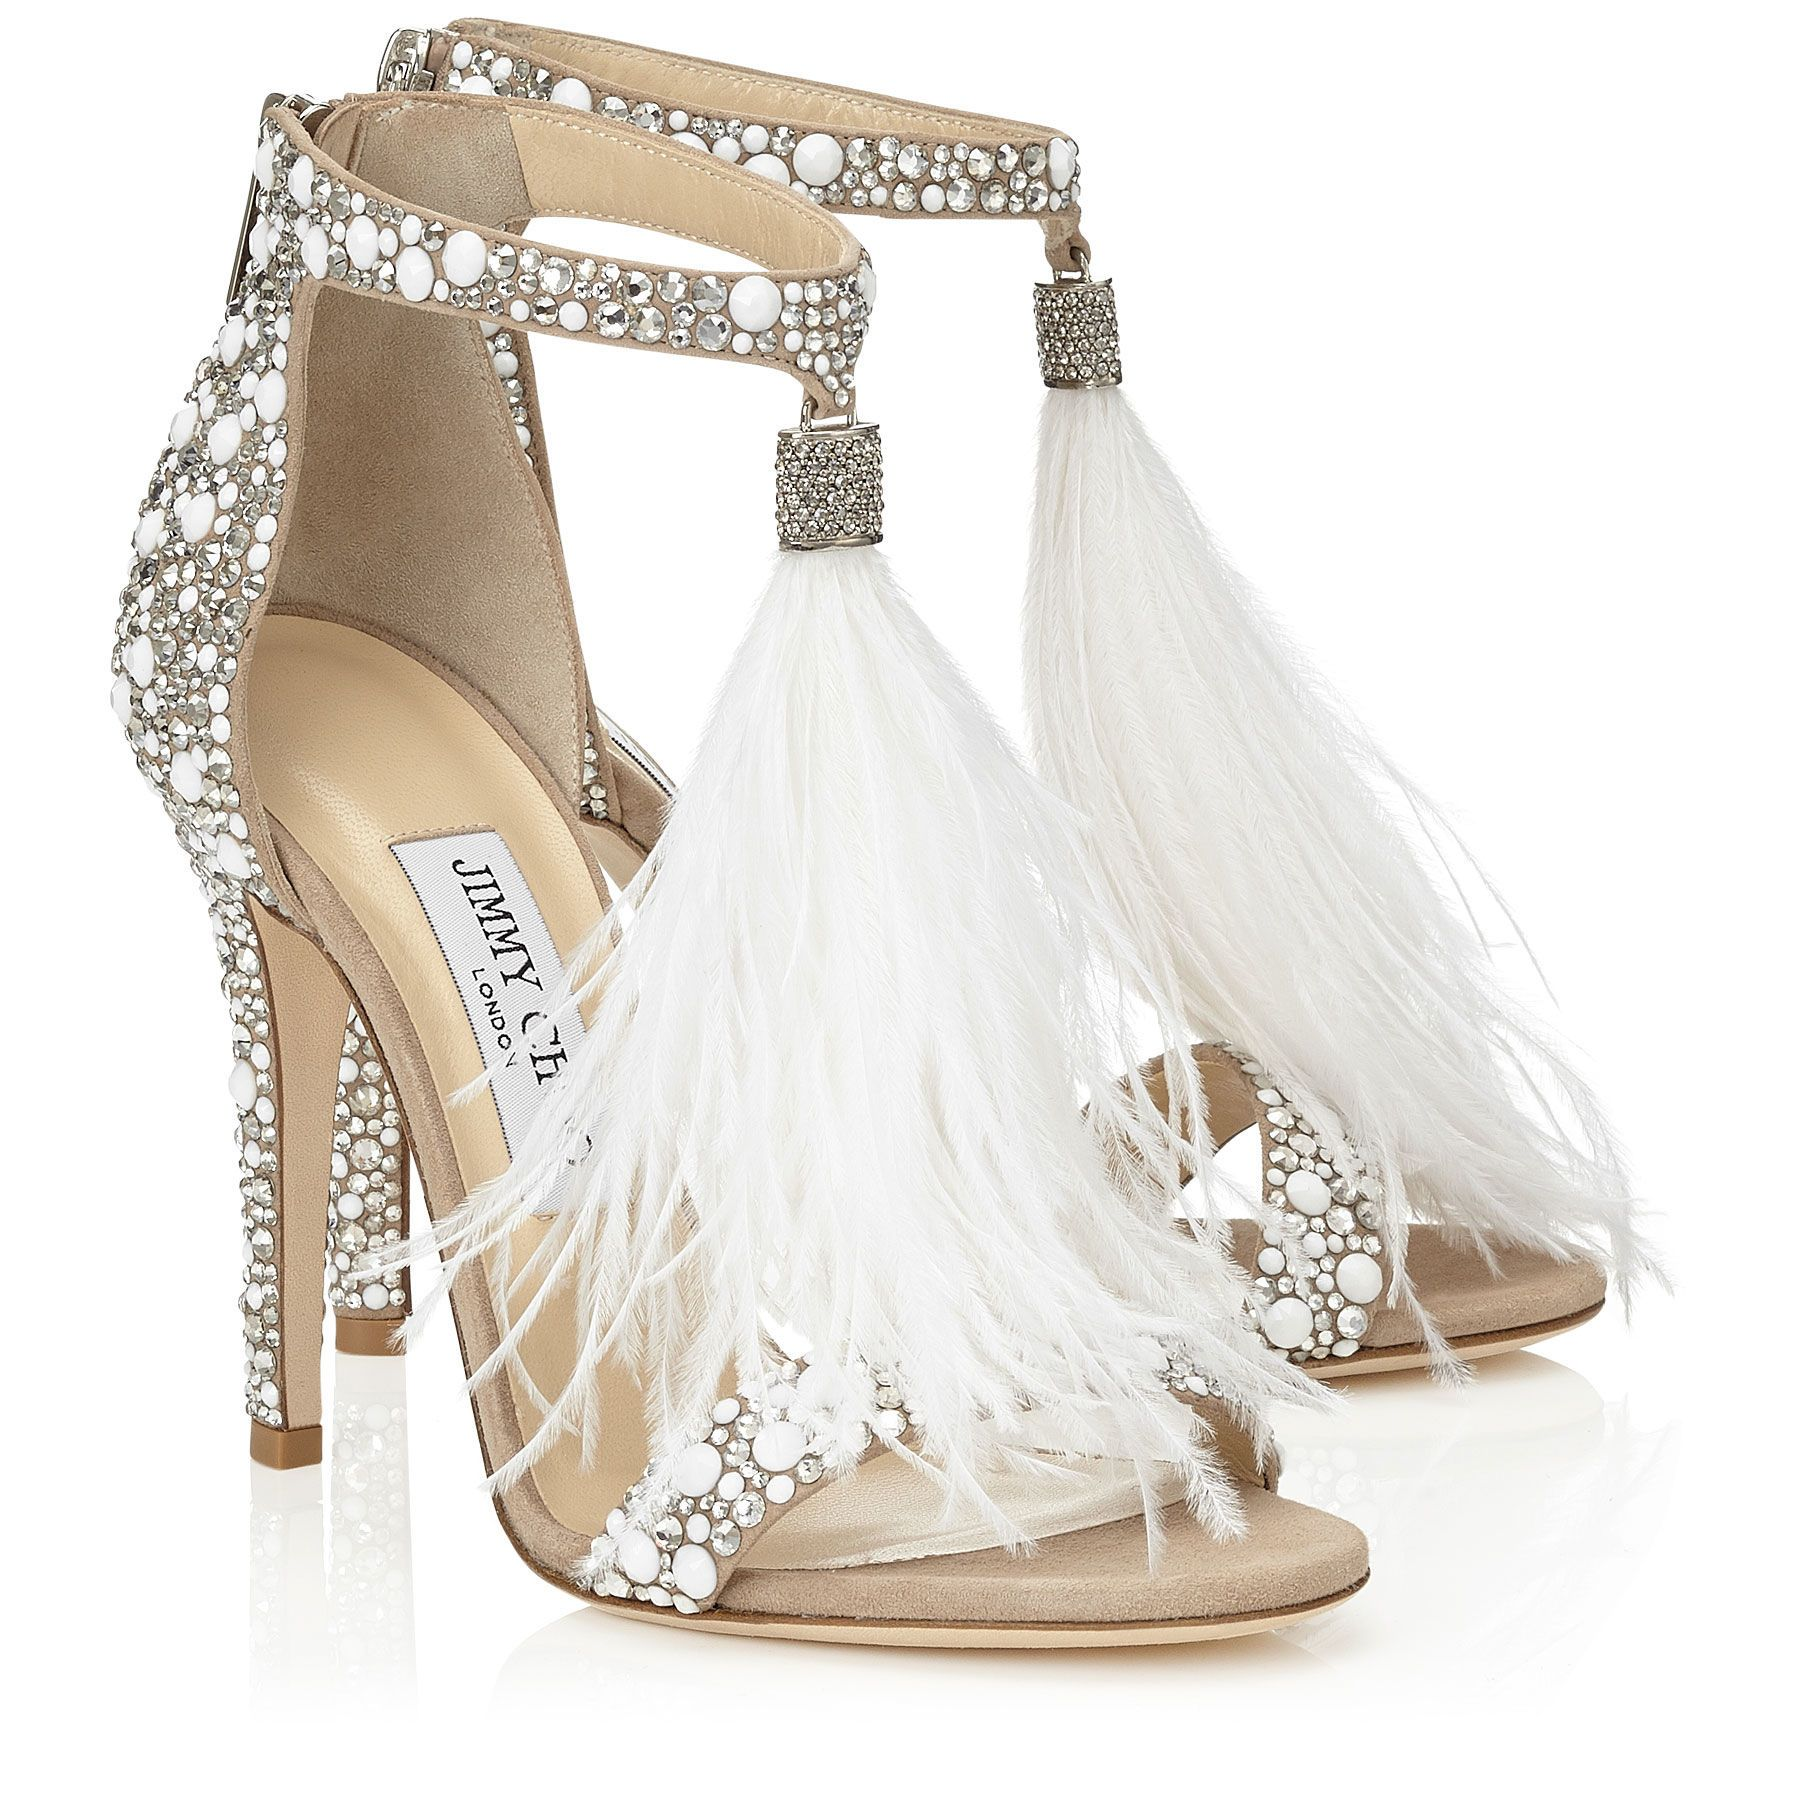 Jimmy Choo VIOLA 110 White Suede and Hot Fix Crystal Embellished Sandals  with an Ostrich Feather